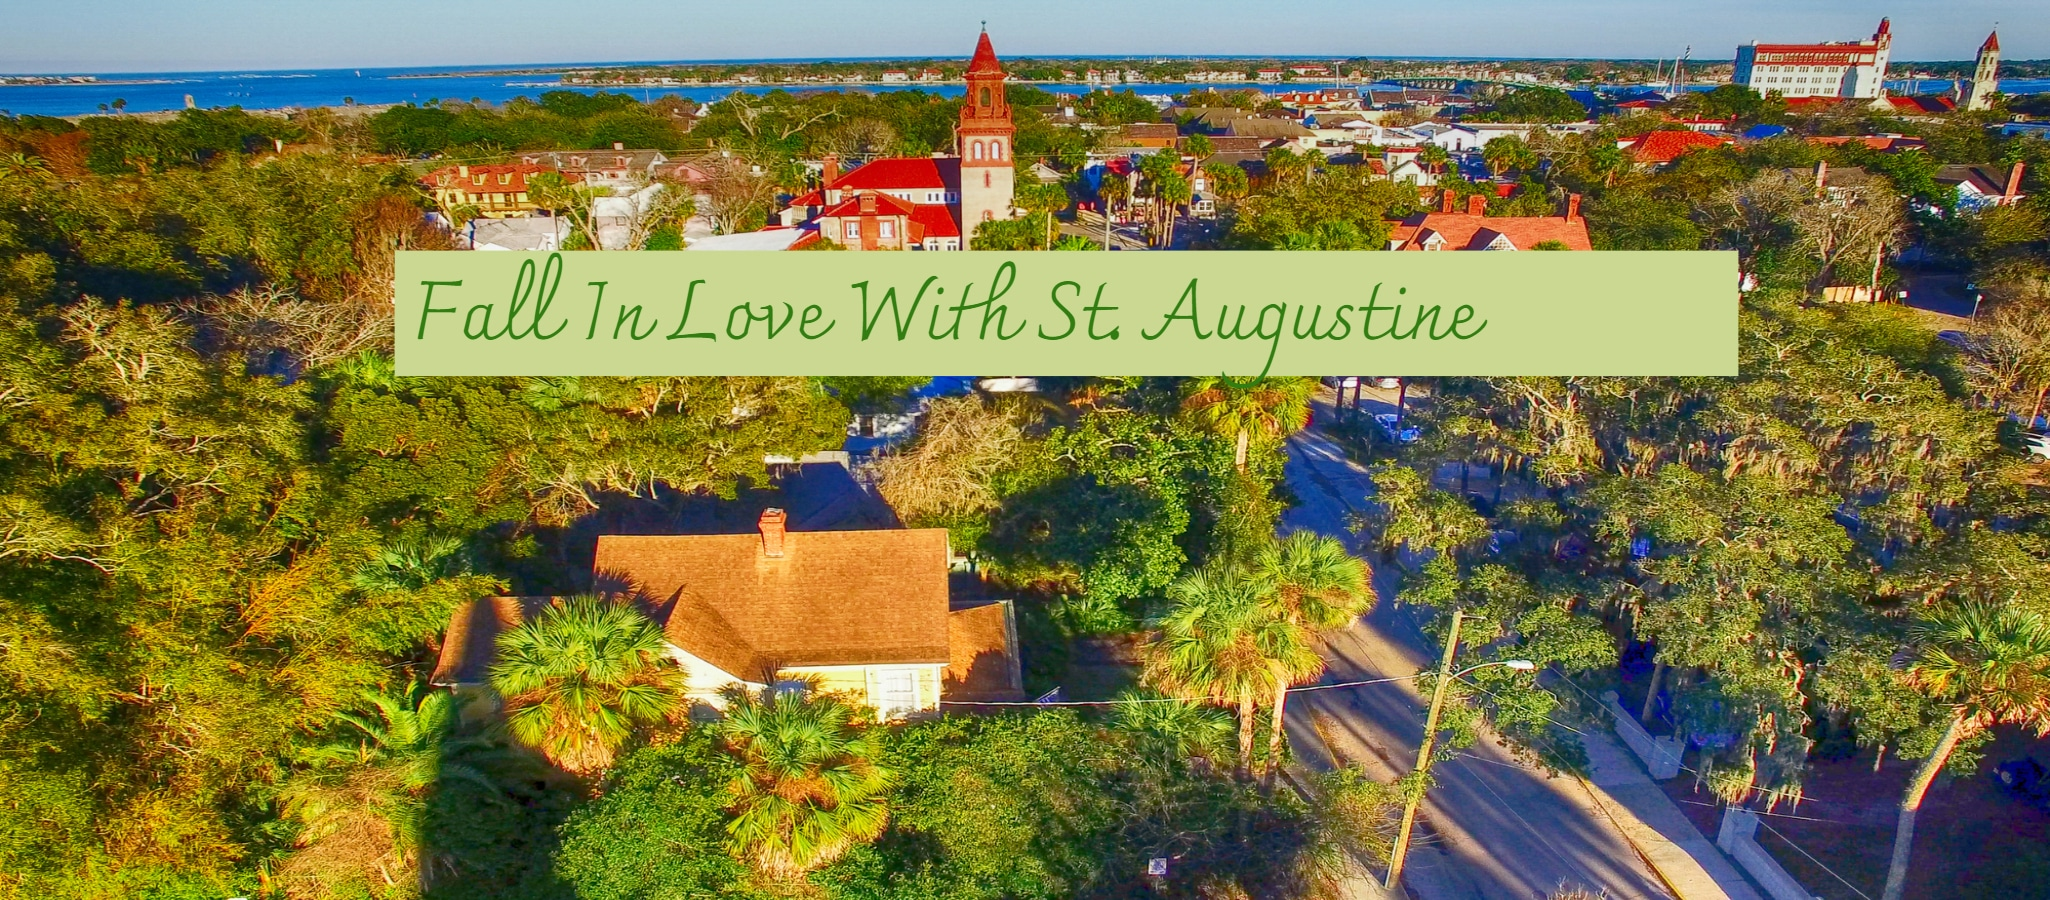 Fall In Love With America's Oldest City: St. Augustine, Florida